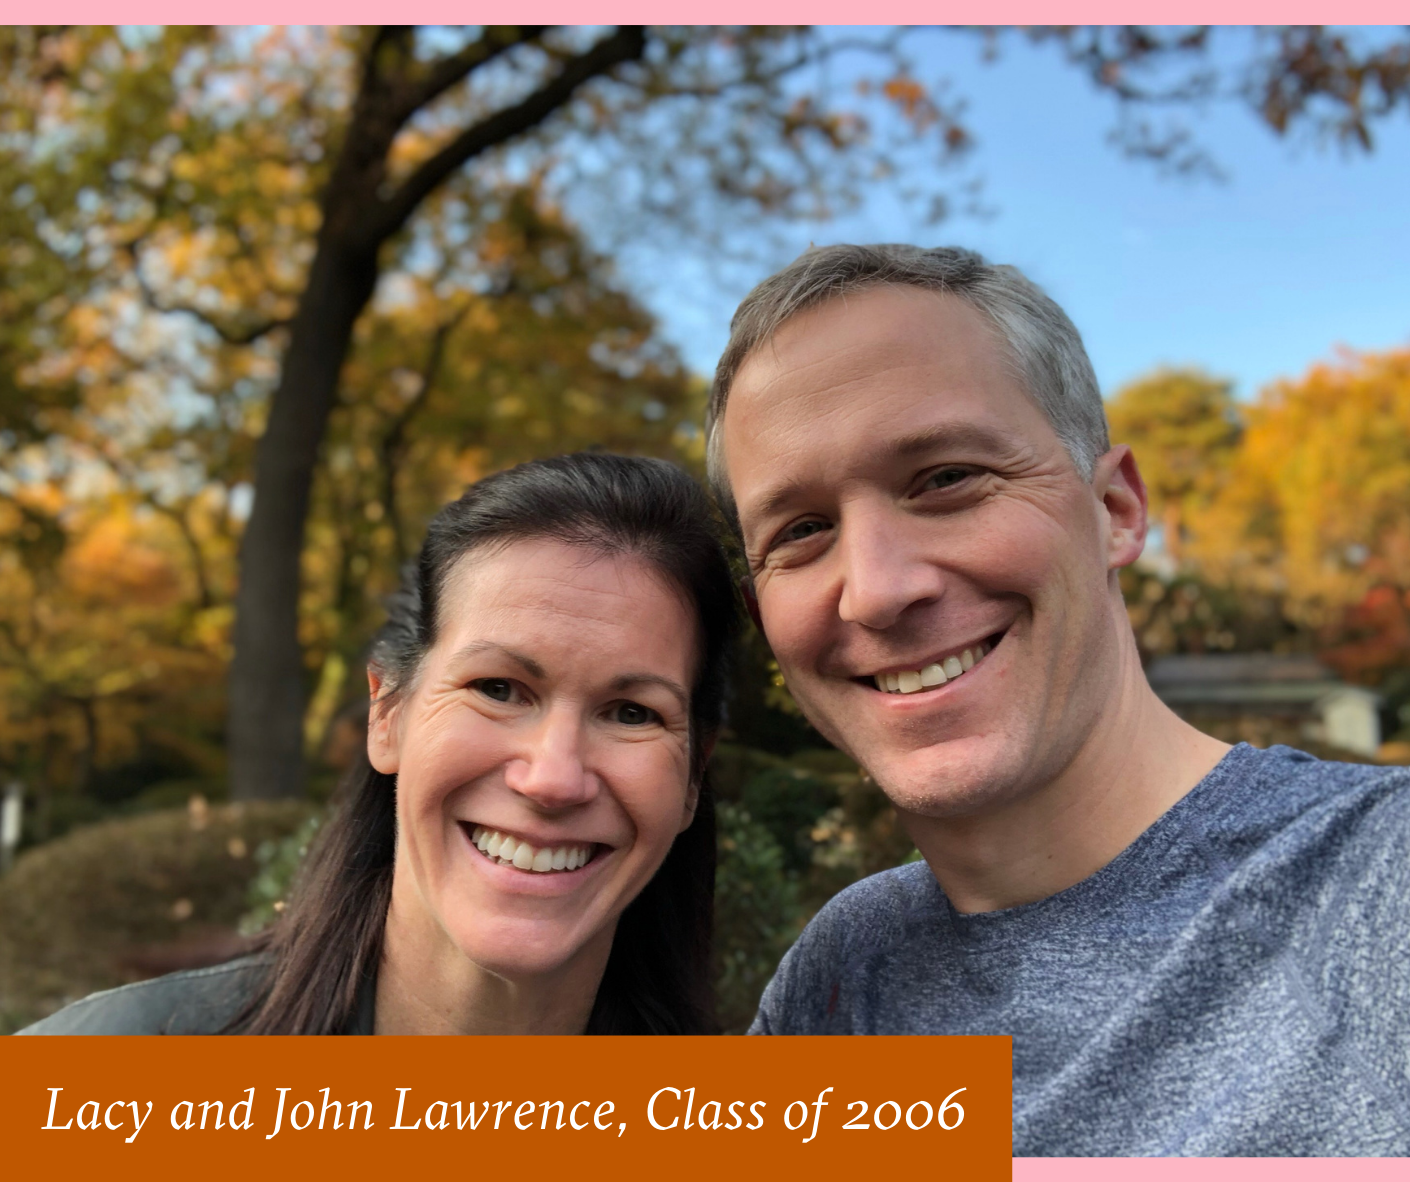 Portrait of Lacy and John Lawrence